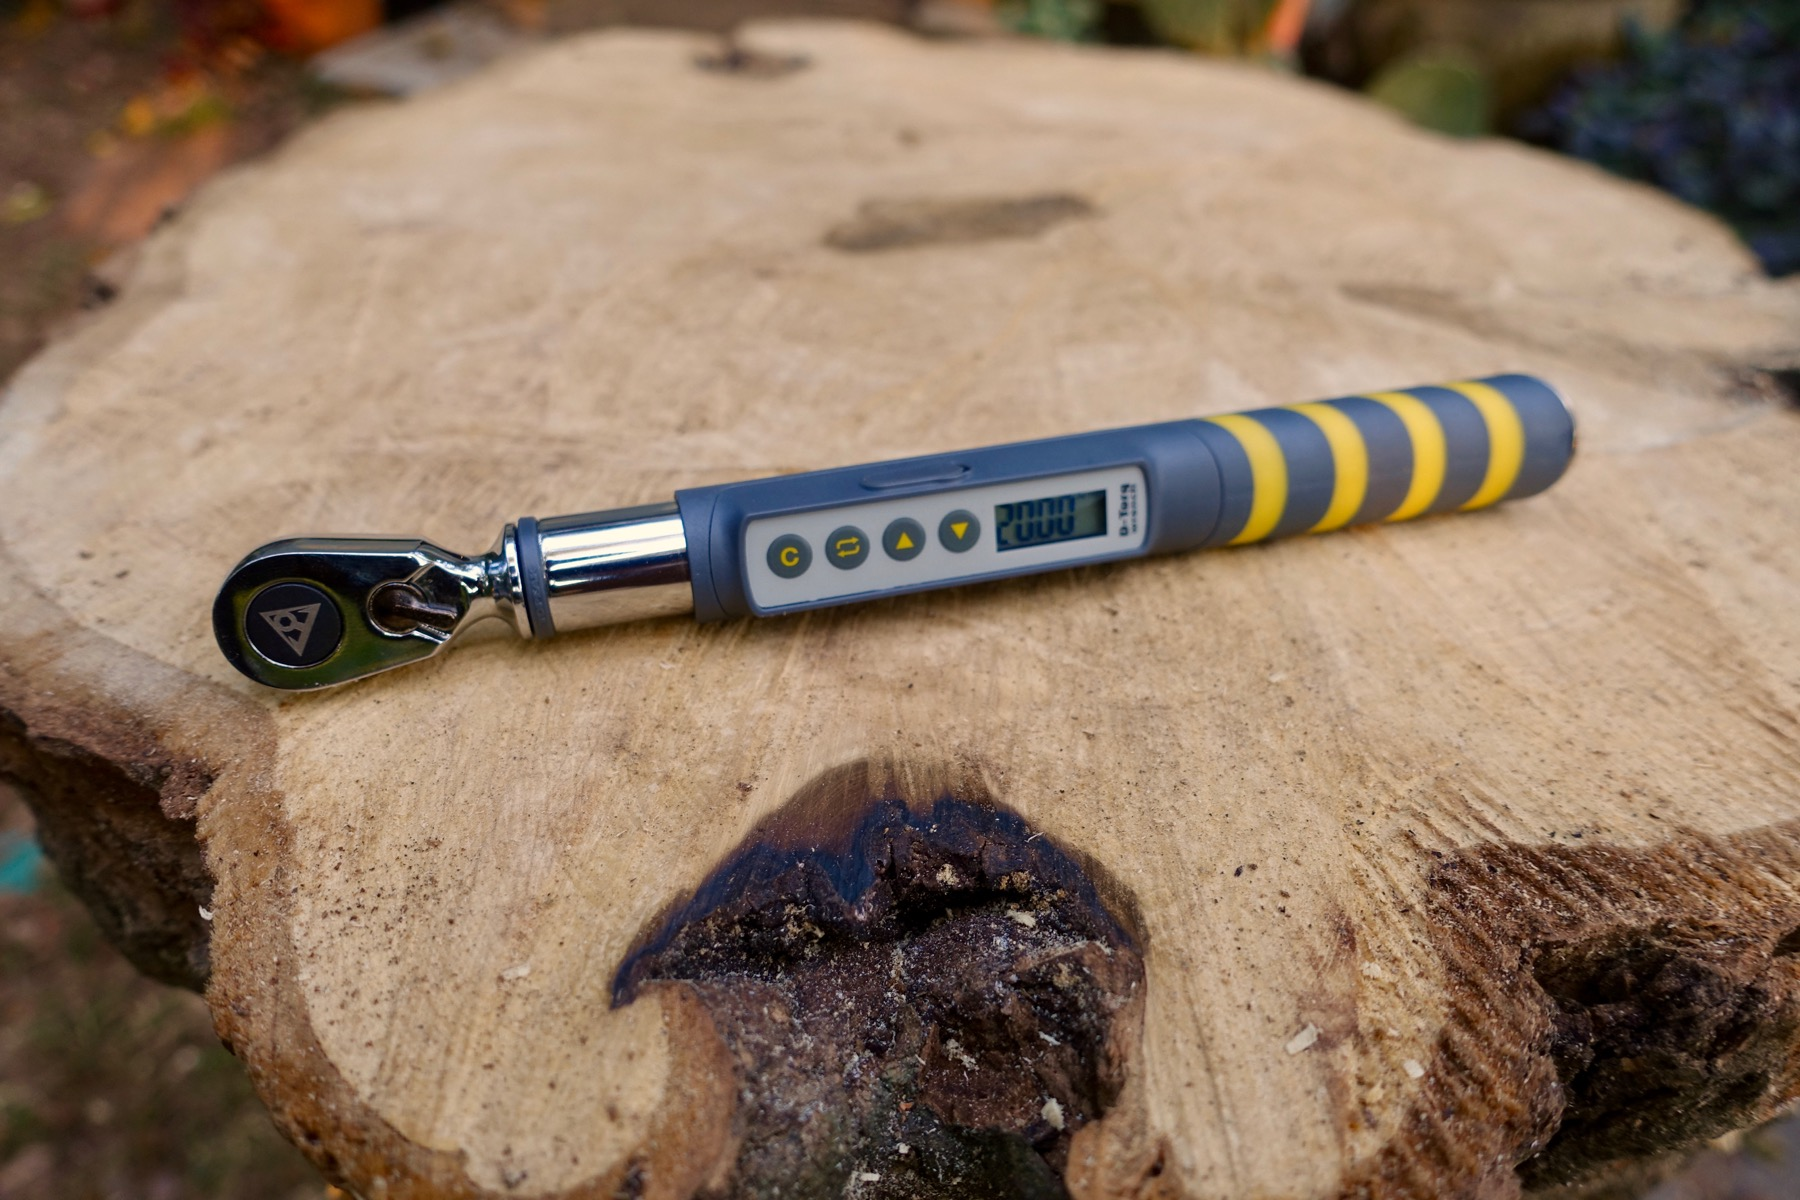 Topeak D-Torque Wrench has Digital Display, Ratcheting Head, and Bits for Just About Every Bike Bolt [Review] - Singletracks Mountain Bike News